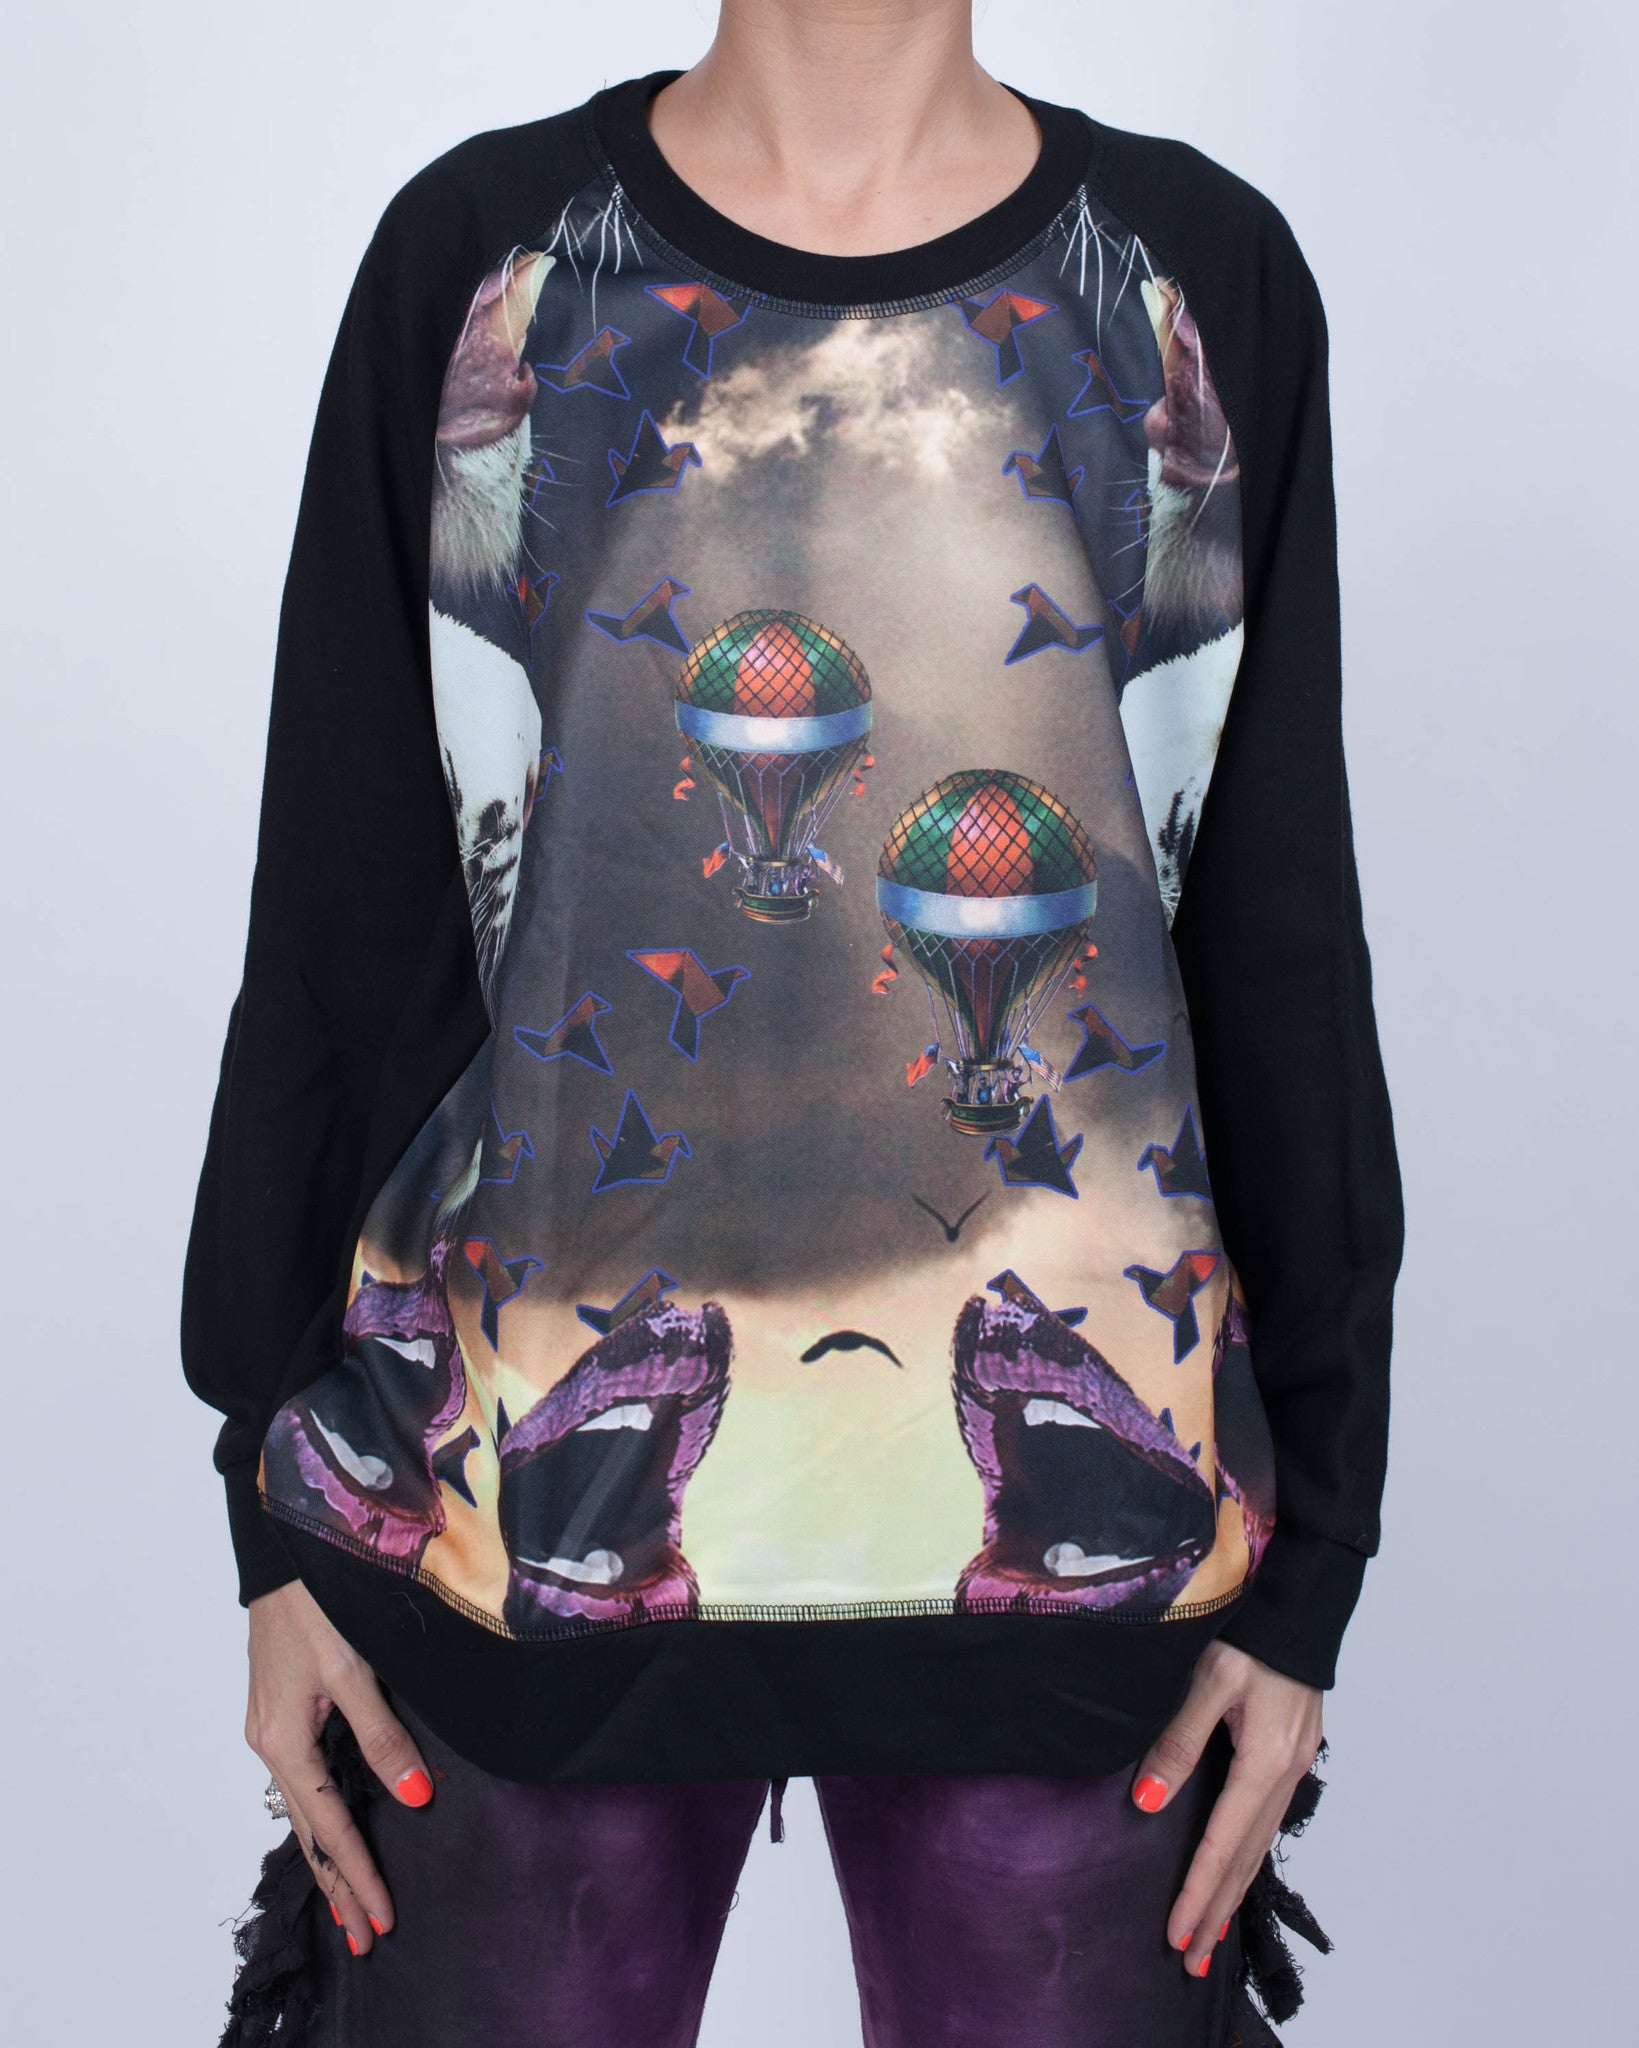 Glitter Lips and Hot Air Balloons Sweatshirt